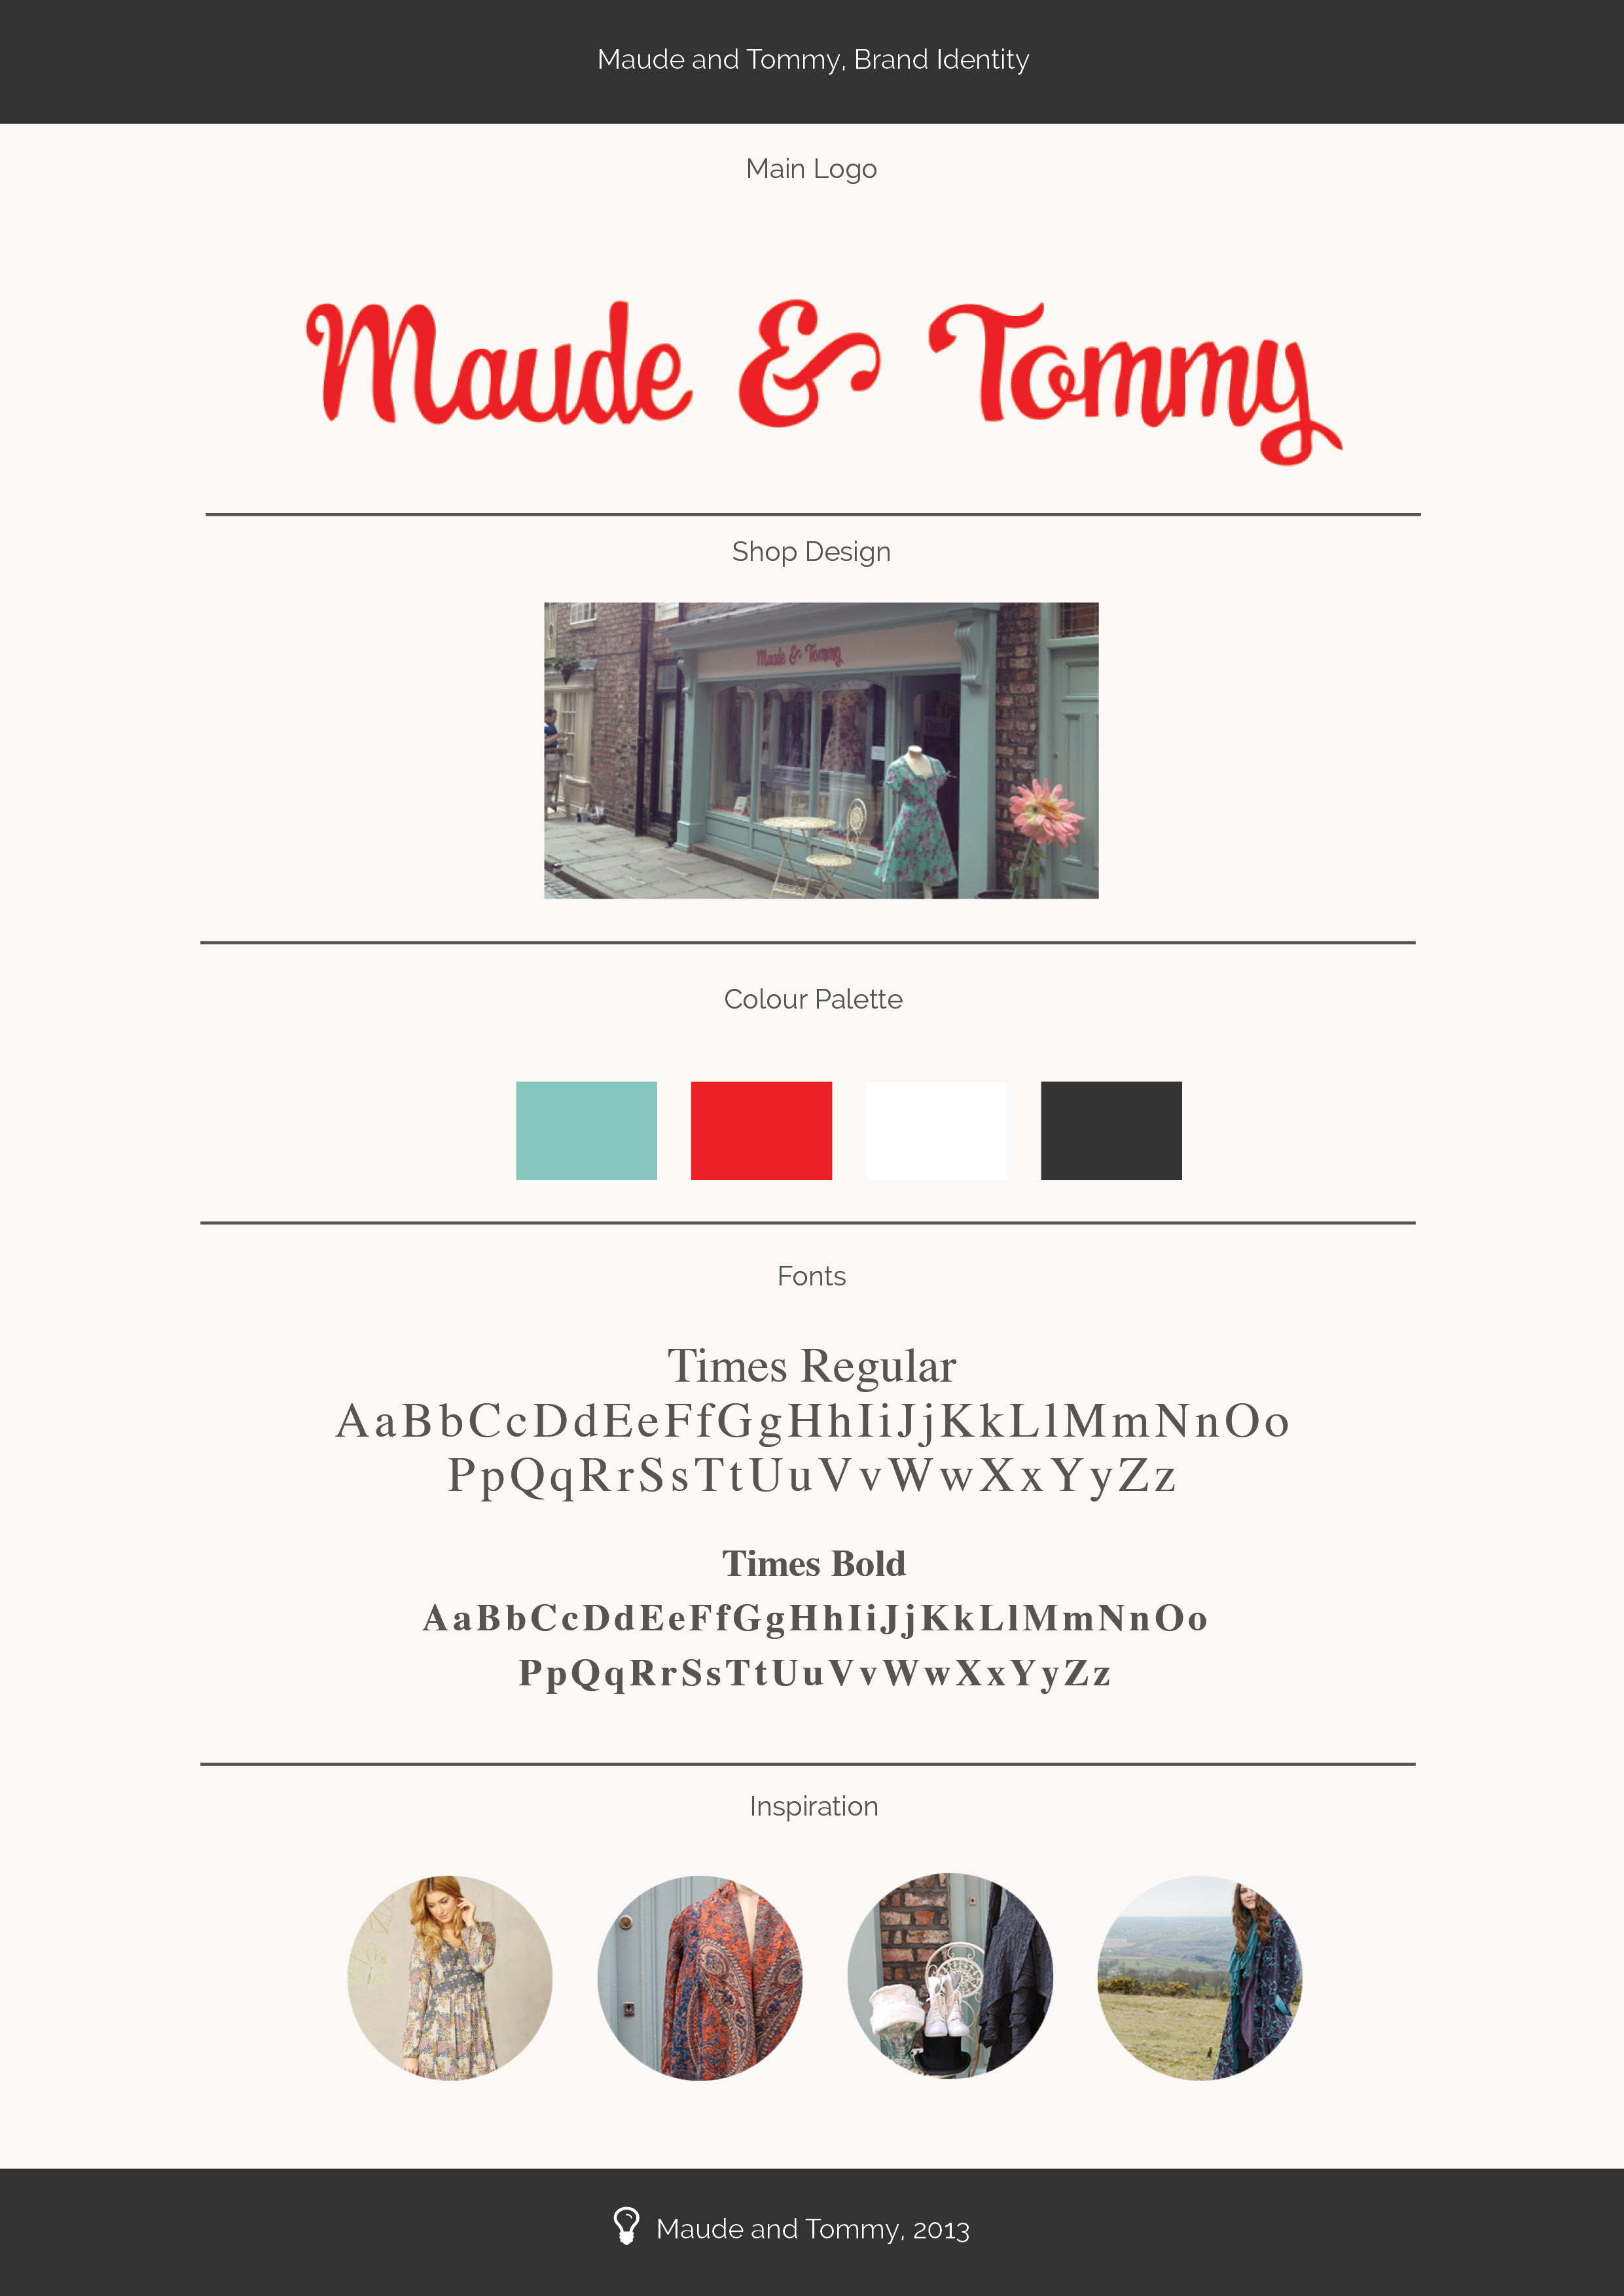 Maude and Tommy Brand Identity